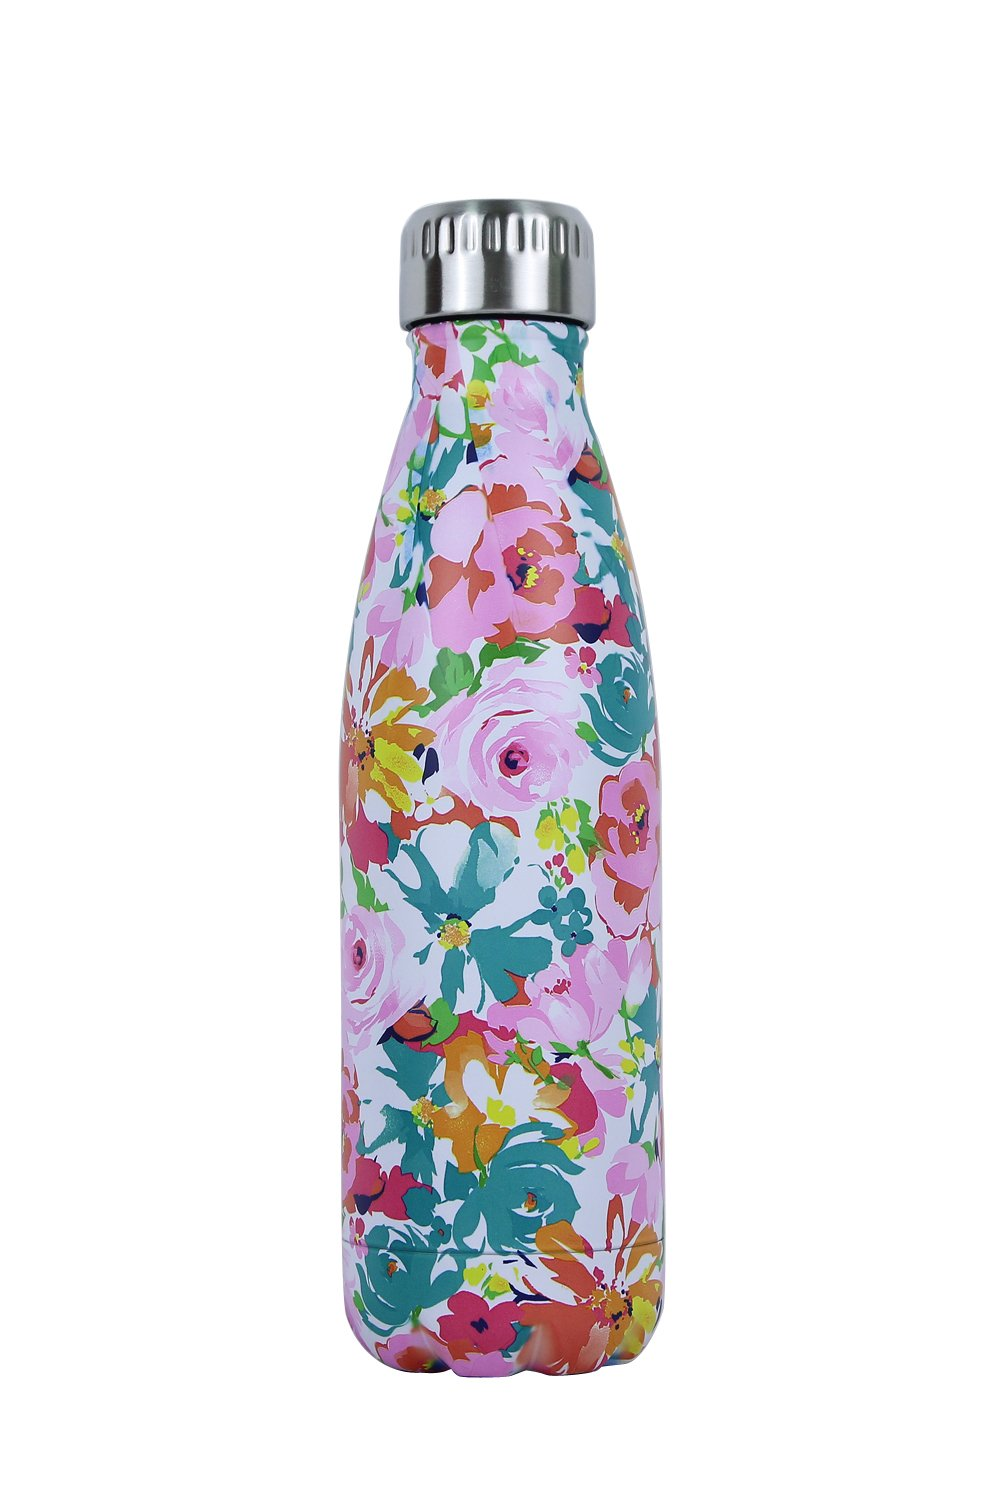 Double Walled Vacuum Flask - Insulated Stainless Steel Water Bottle - Leak Proof Cola Shape Portable Water Bottle - No Sweat,Hot/Cold 24 hours,17 Oz (500 ml) (Flower) by Luoda